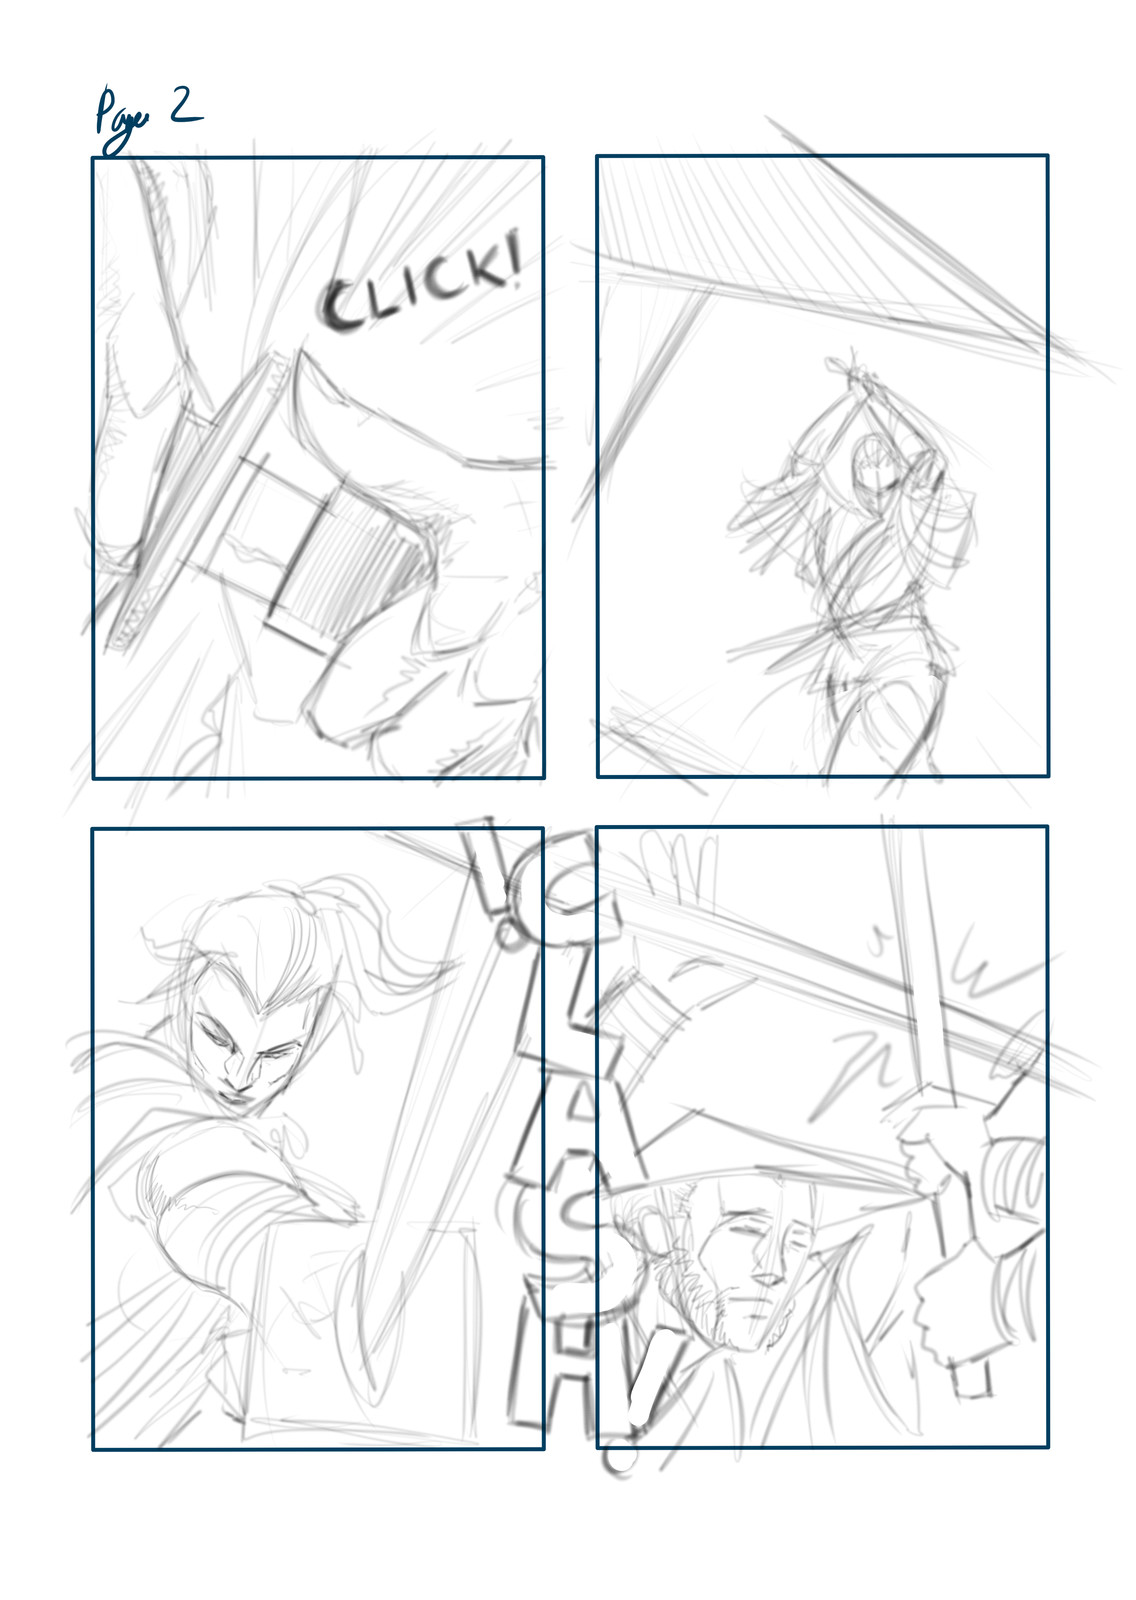 Pencil layout for Page 02, using Mischief